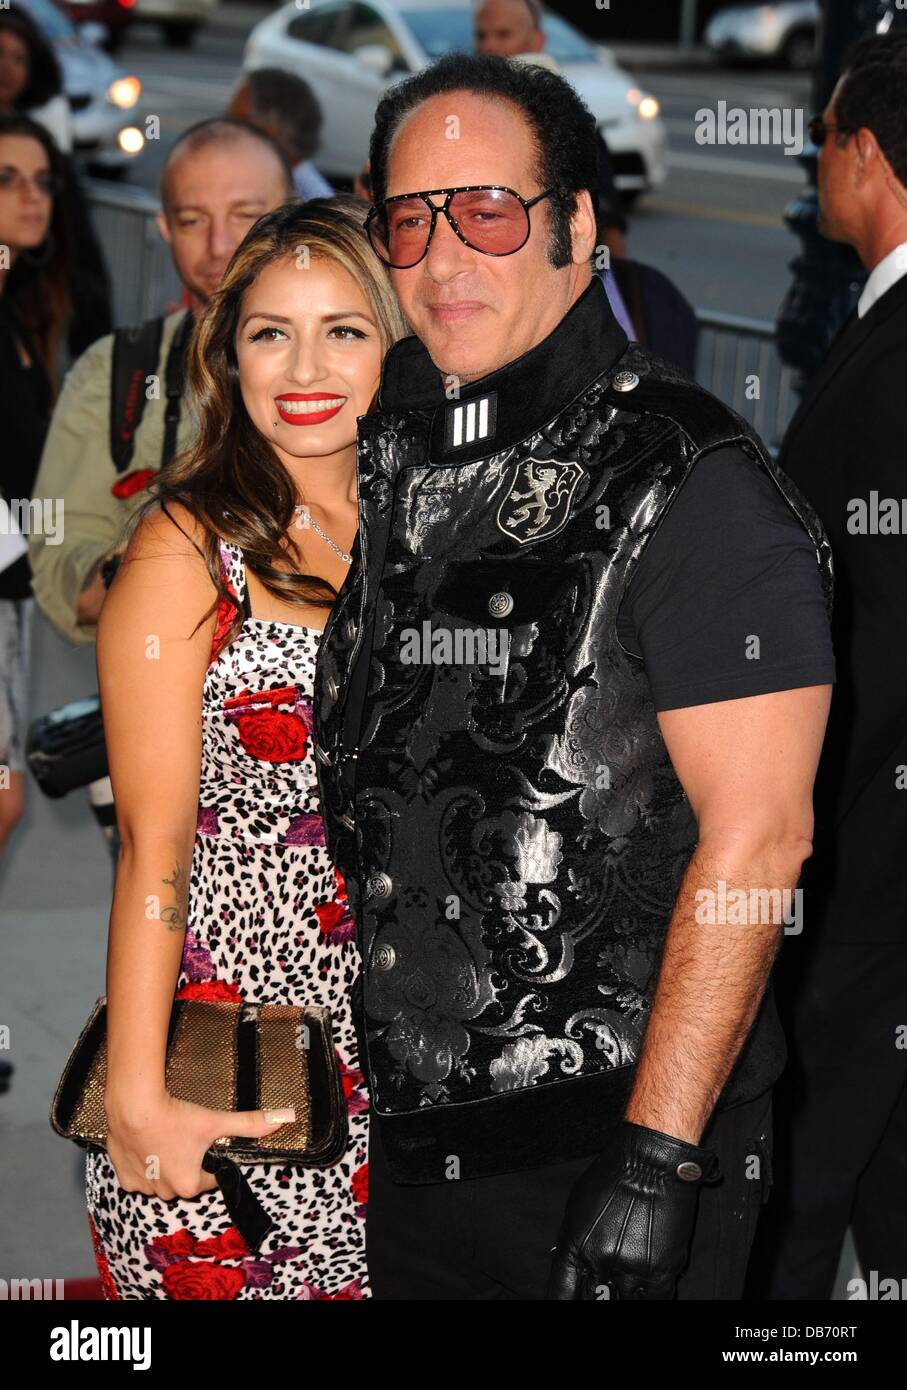 Los Angeles, CA. 24th July, 2013. Andrew Dice Clay ...